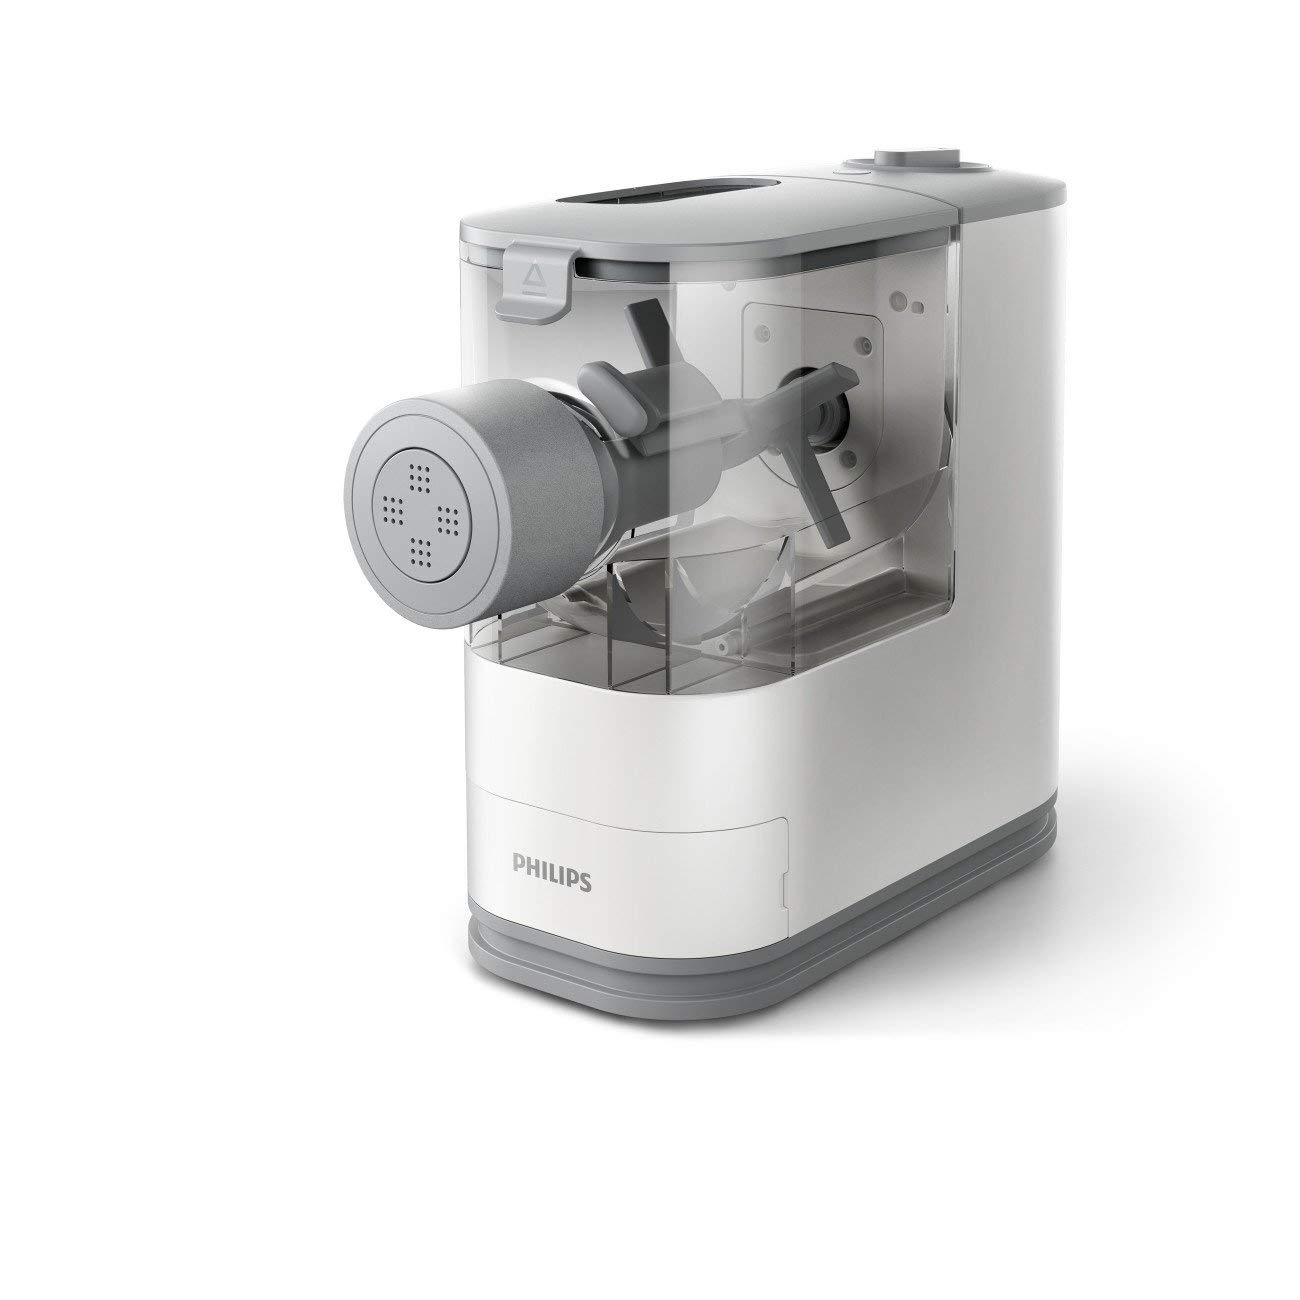 Philips Pasta Maker Compact HR2370/05 White